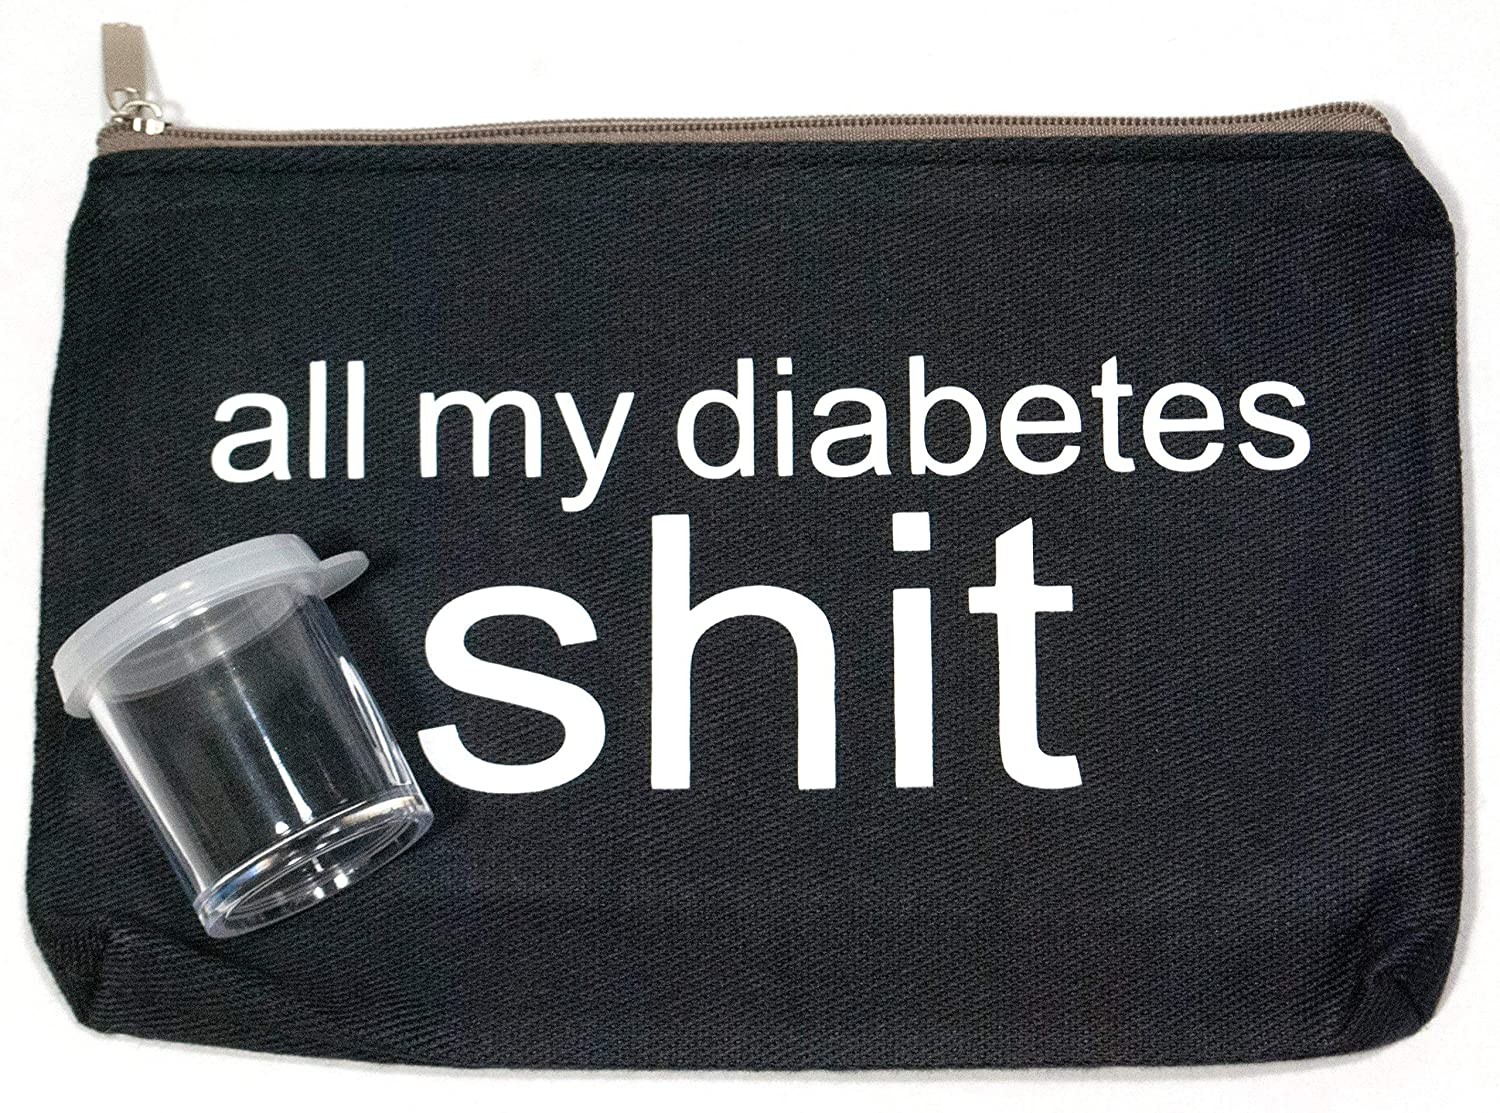 All My Diabetes Stuff Small Supplies Carrying Case Bag (approx. 4.75in x 7in)